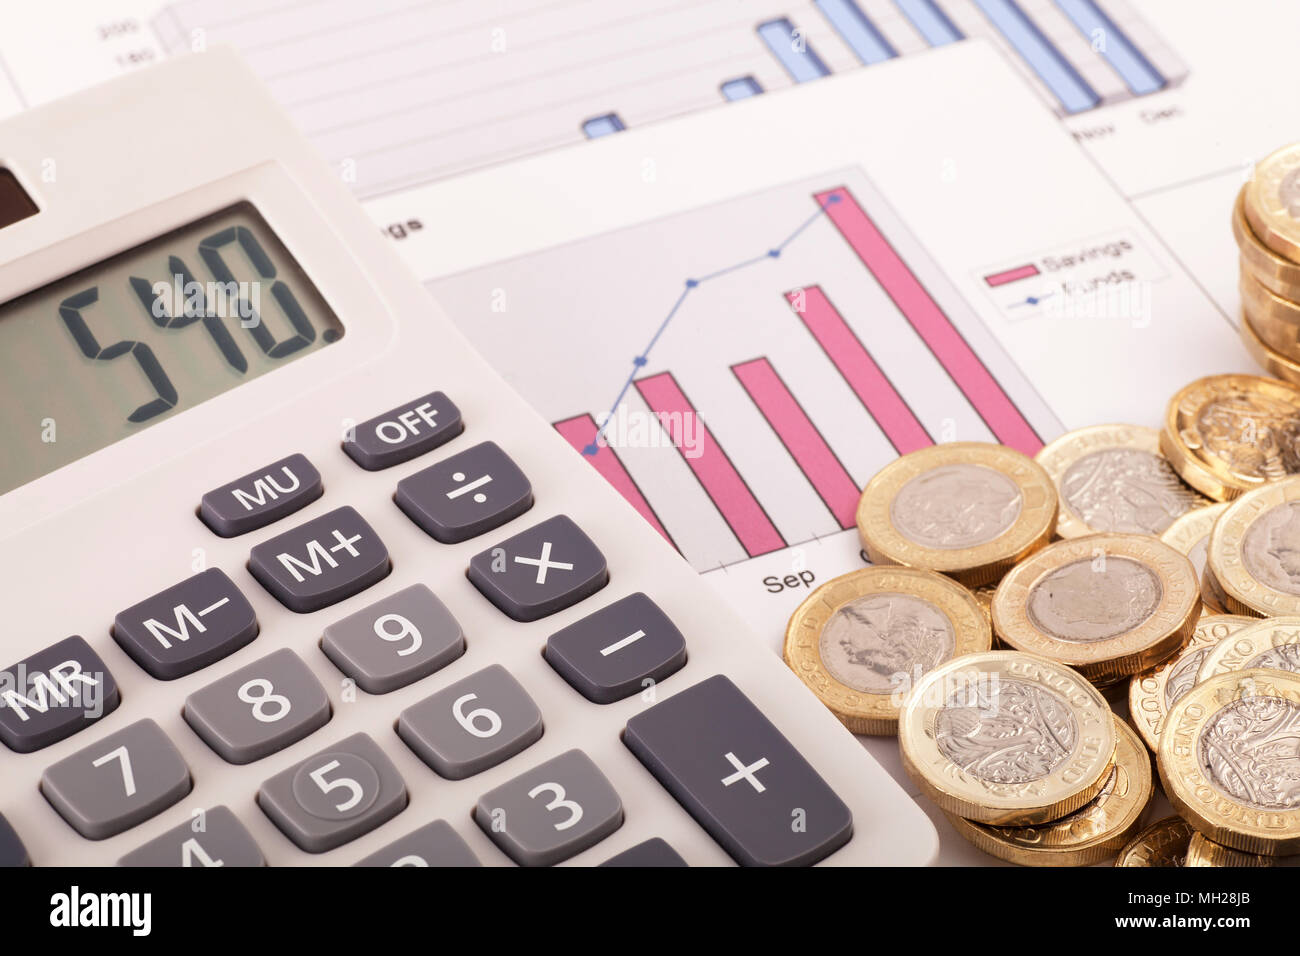 A calculator sitting on some graphs labelled savings and funds with some new (post 2016) pound coins. - Stock Image